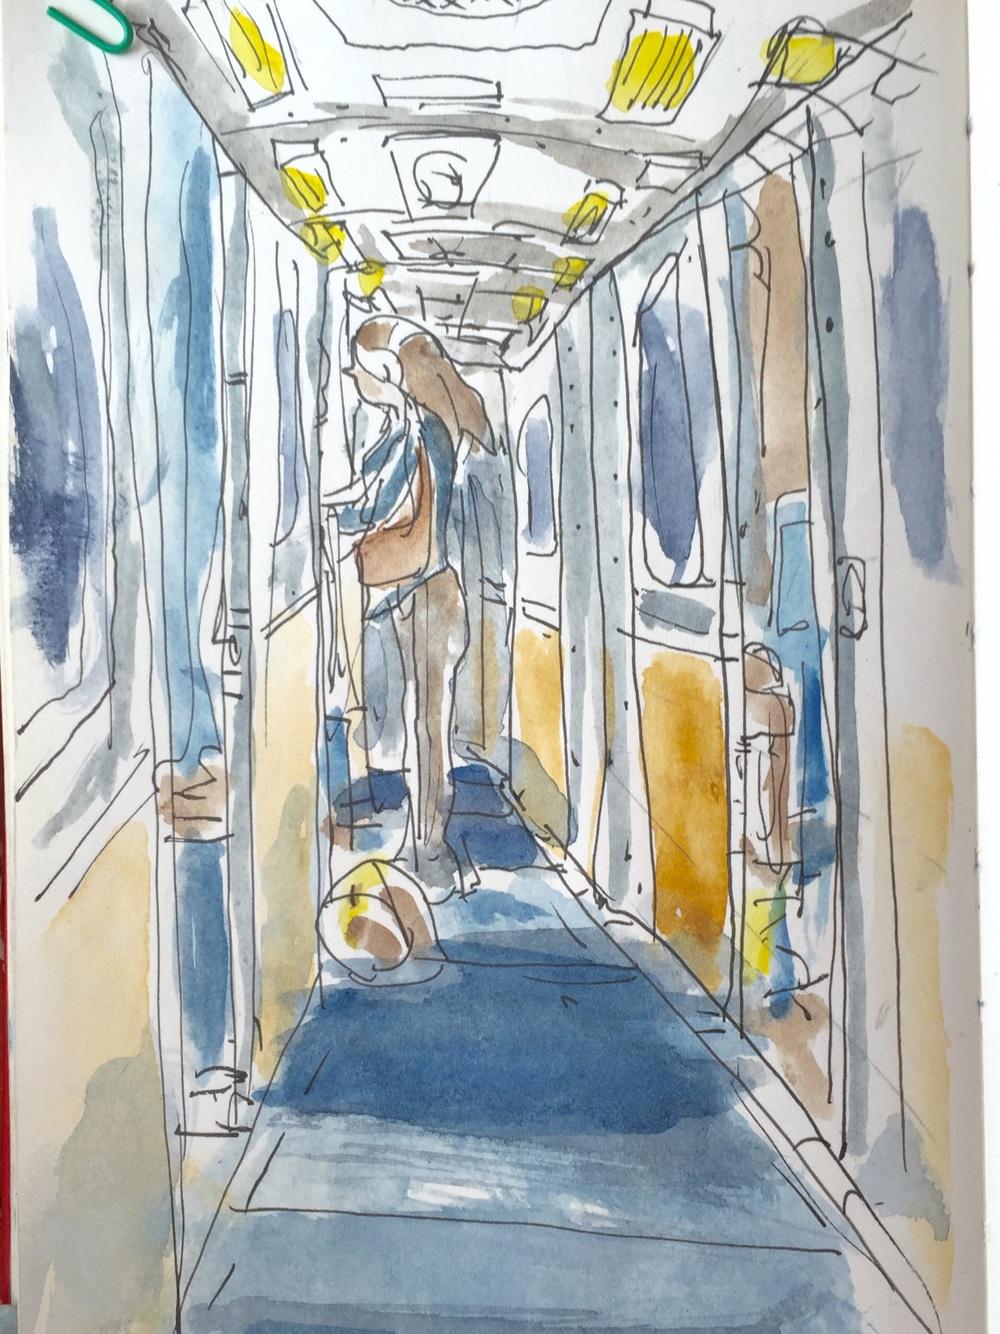 Quick sketch of train hallway.